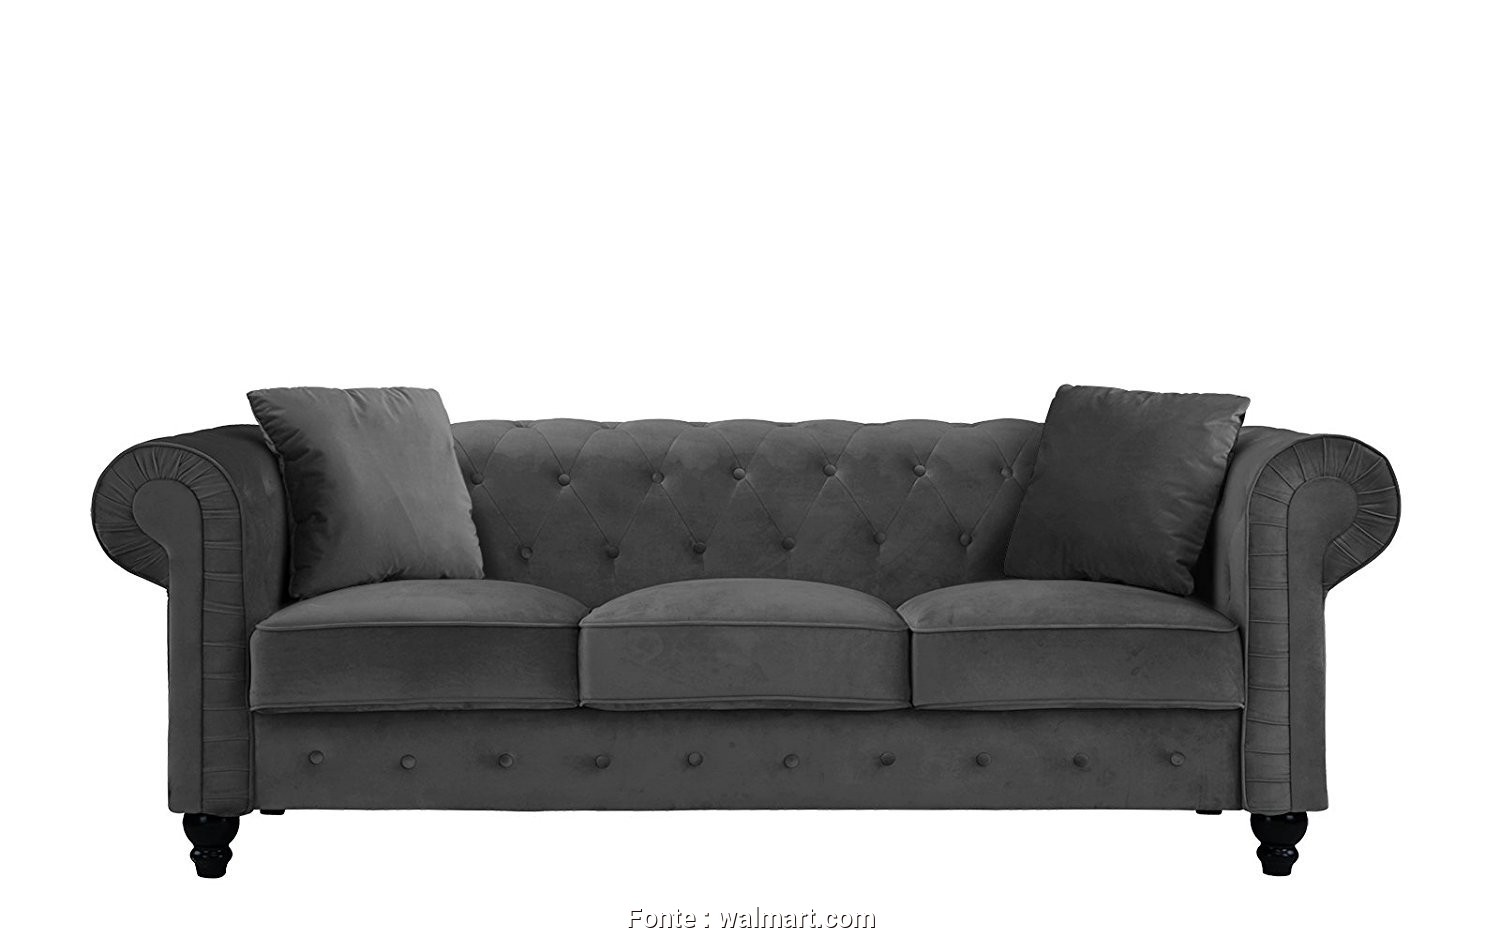 Divano Chesterfield Design, Sbalorditivo Divano Roma Furniture Classic Velvet Scroll, Tufted Button Chesterfield Sofa (Grey), Walmart.Com